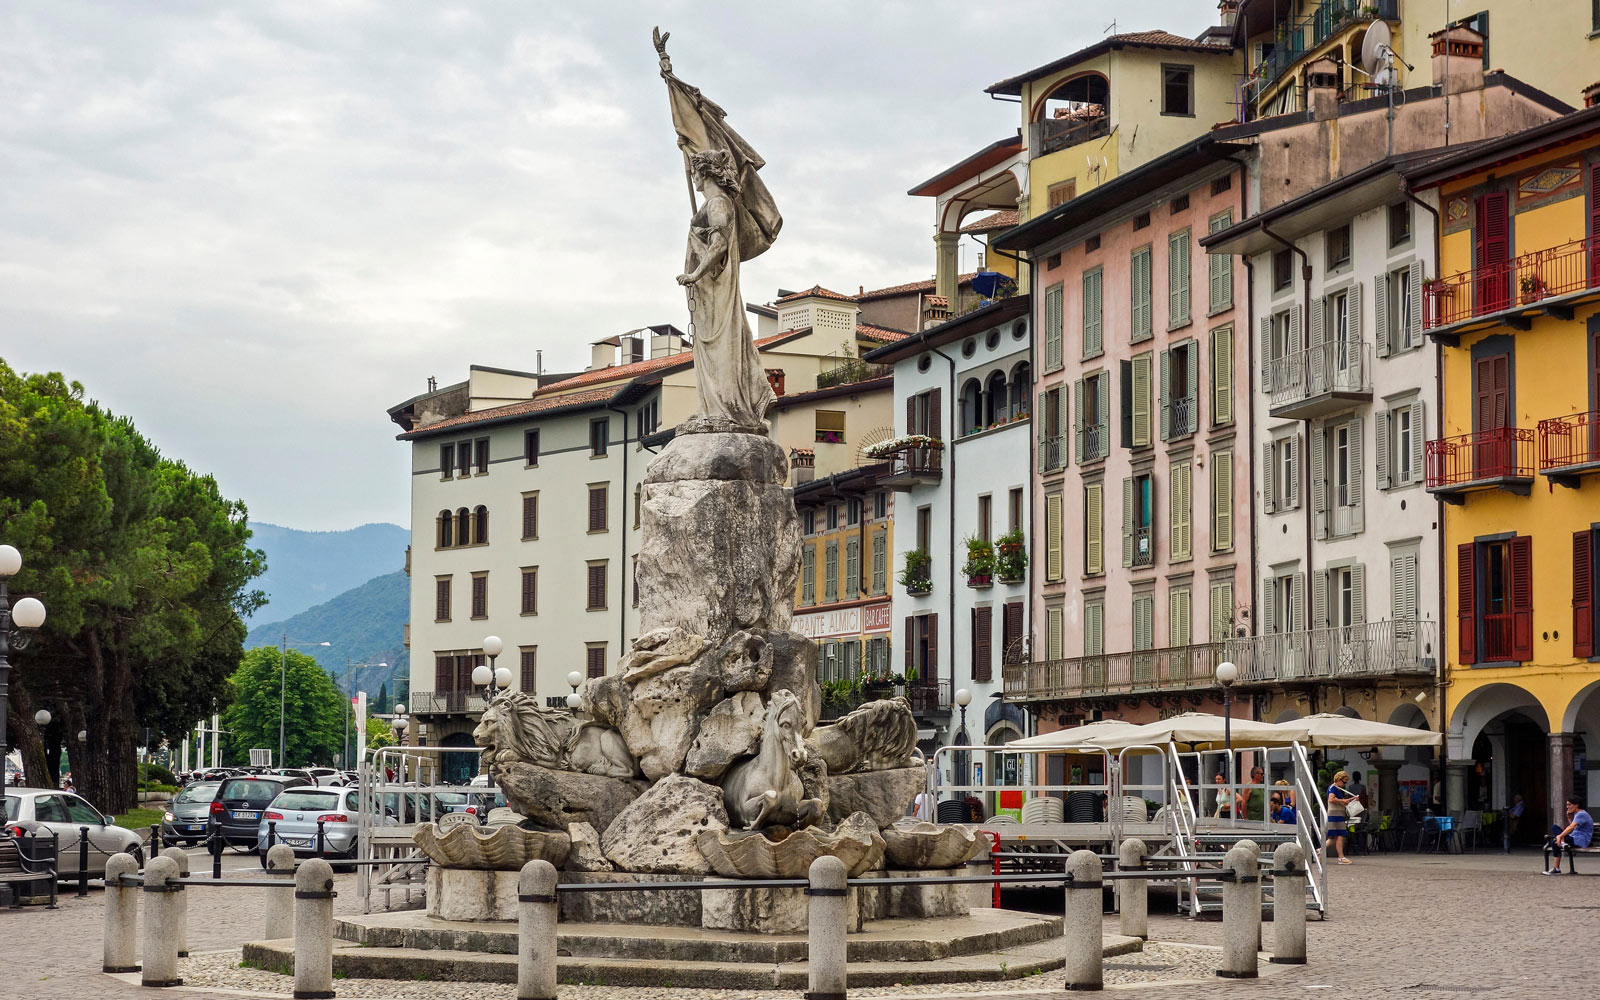 Loevere town square in Italy